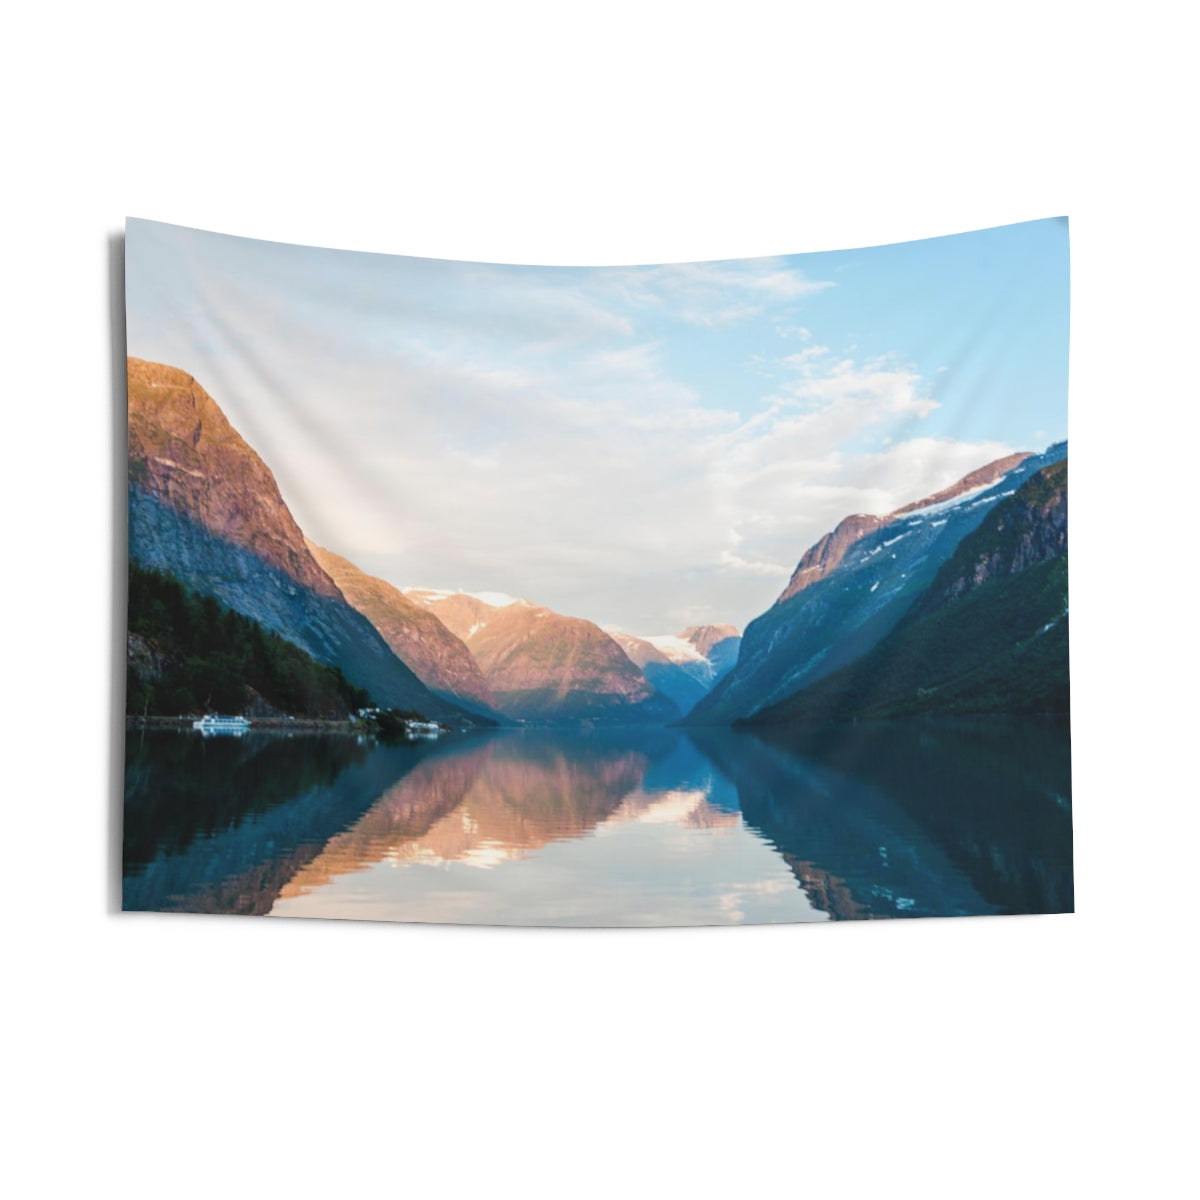 Lake Mountain Tapestry, Indoor Wall Scenic Rocky Mountains Landscape Nature Dorm Hanging Decor - Starcove Design